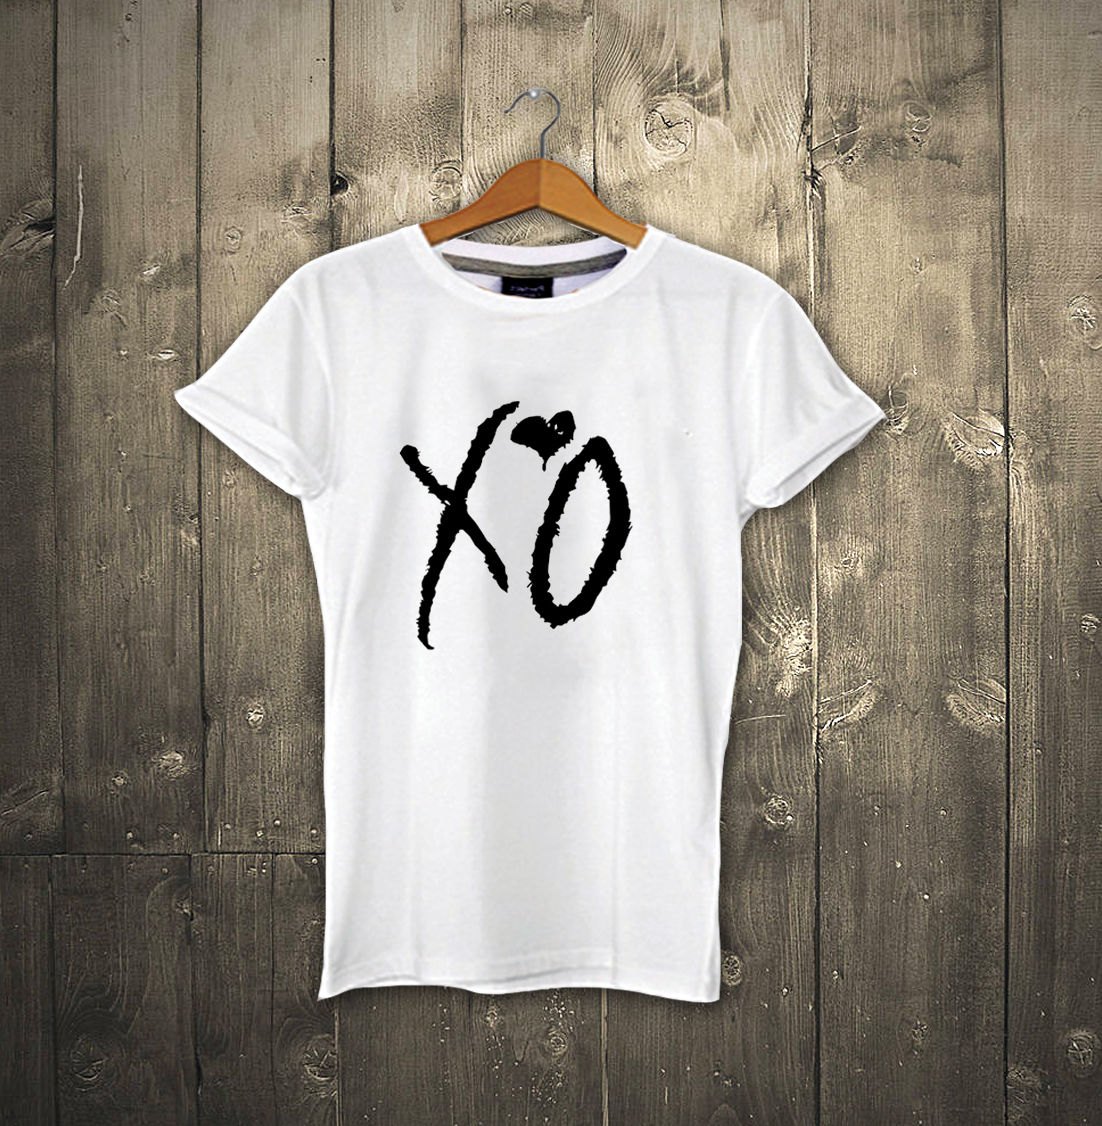 Xo Ovoxo The Weeknd T Shirt Top Mens Bnwt Octobers Very Own Male Pre Cotton Clothing 100 New In Shirts From Men S